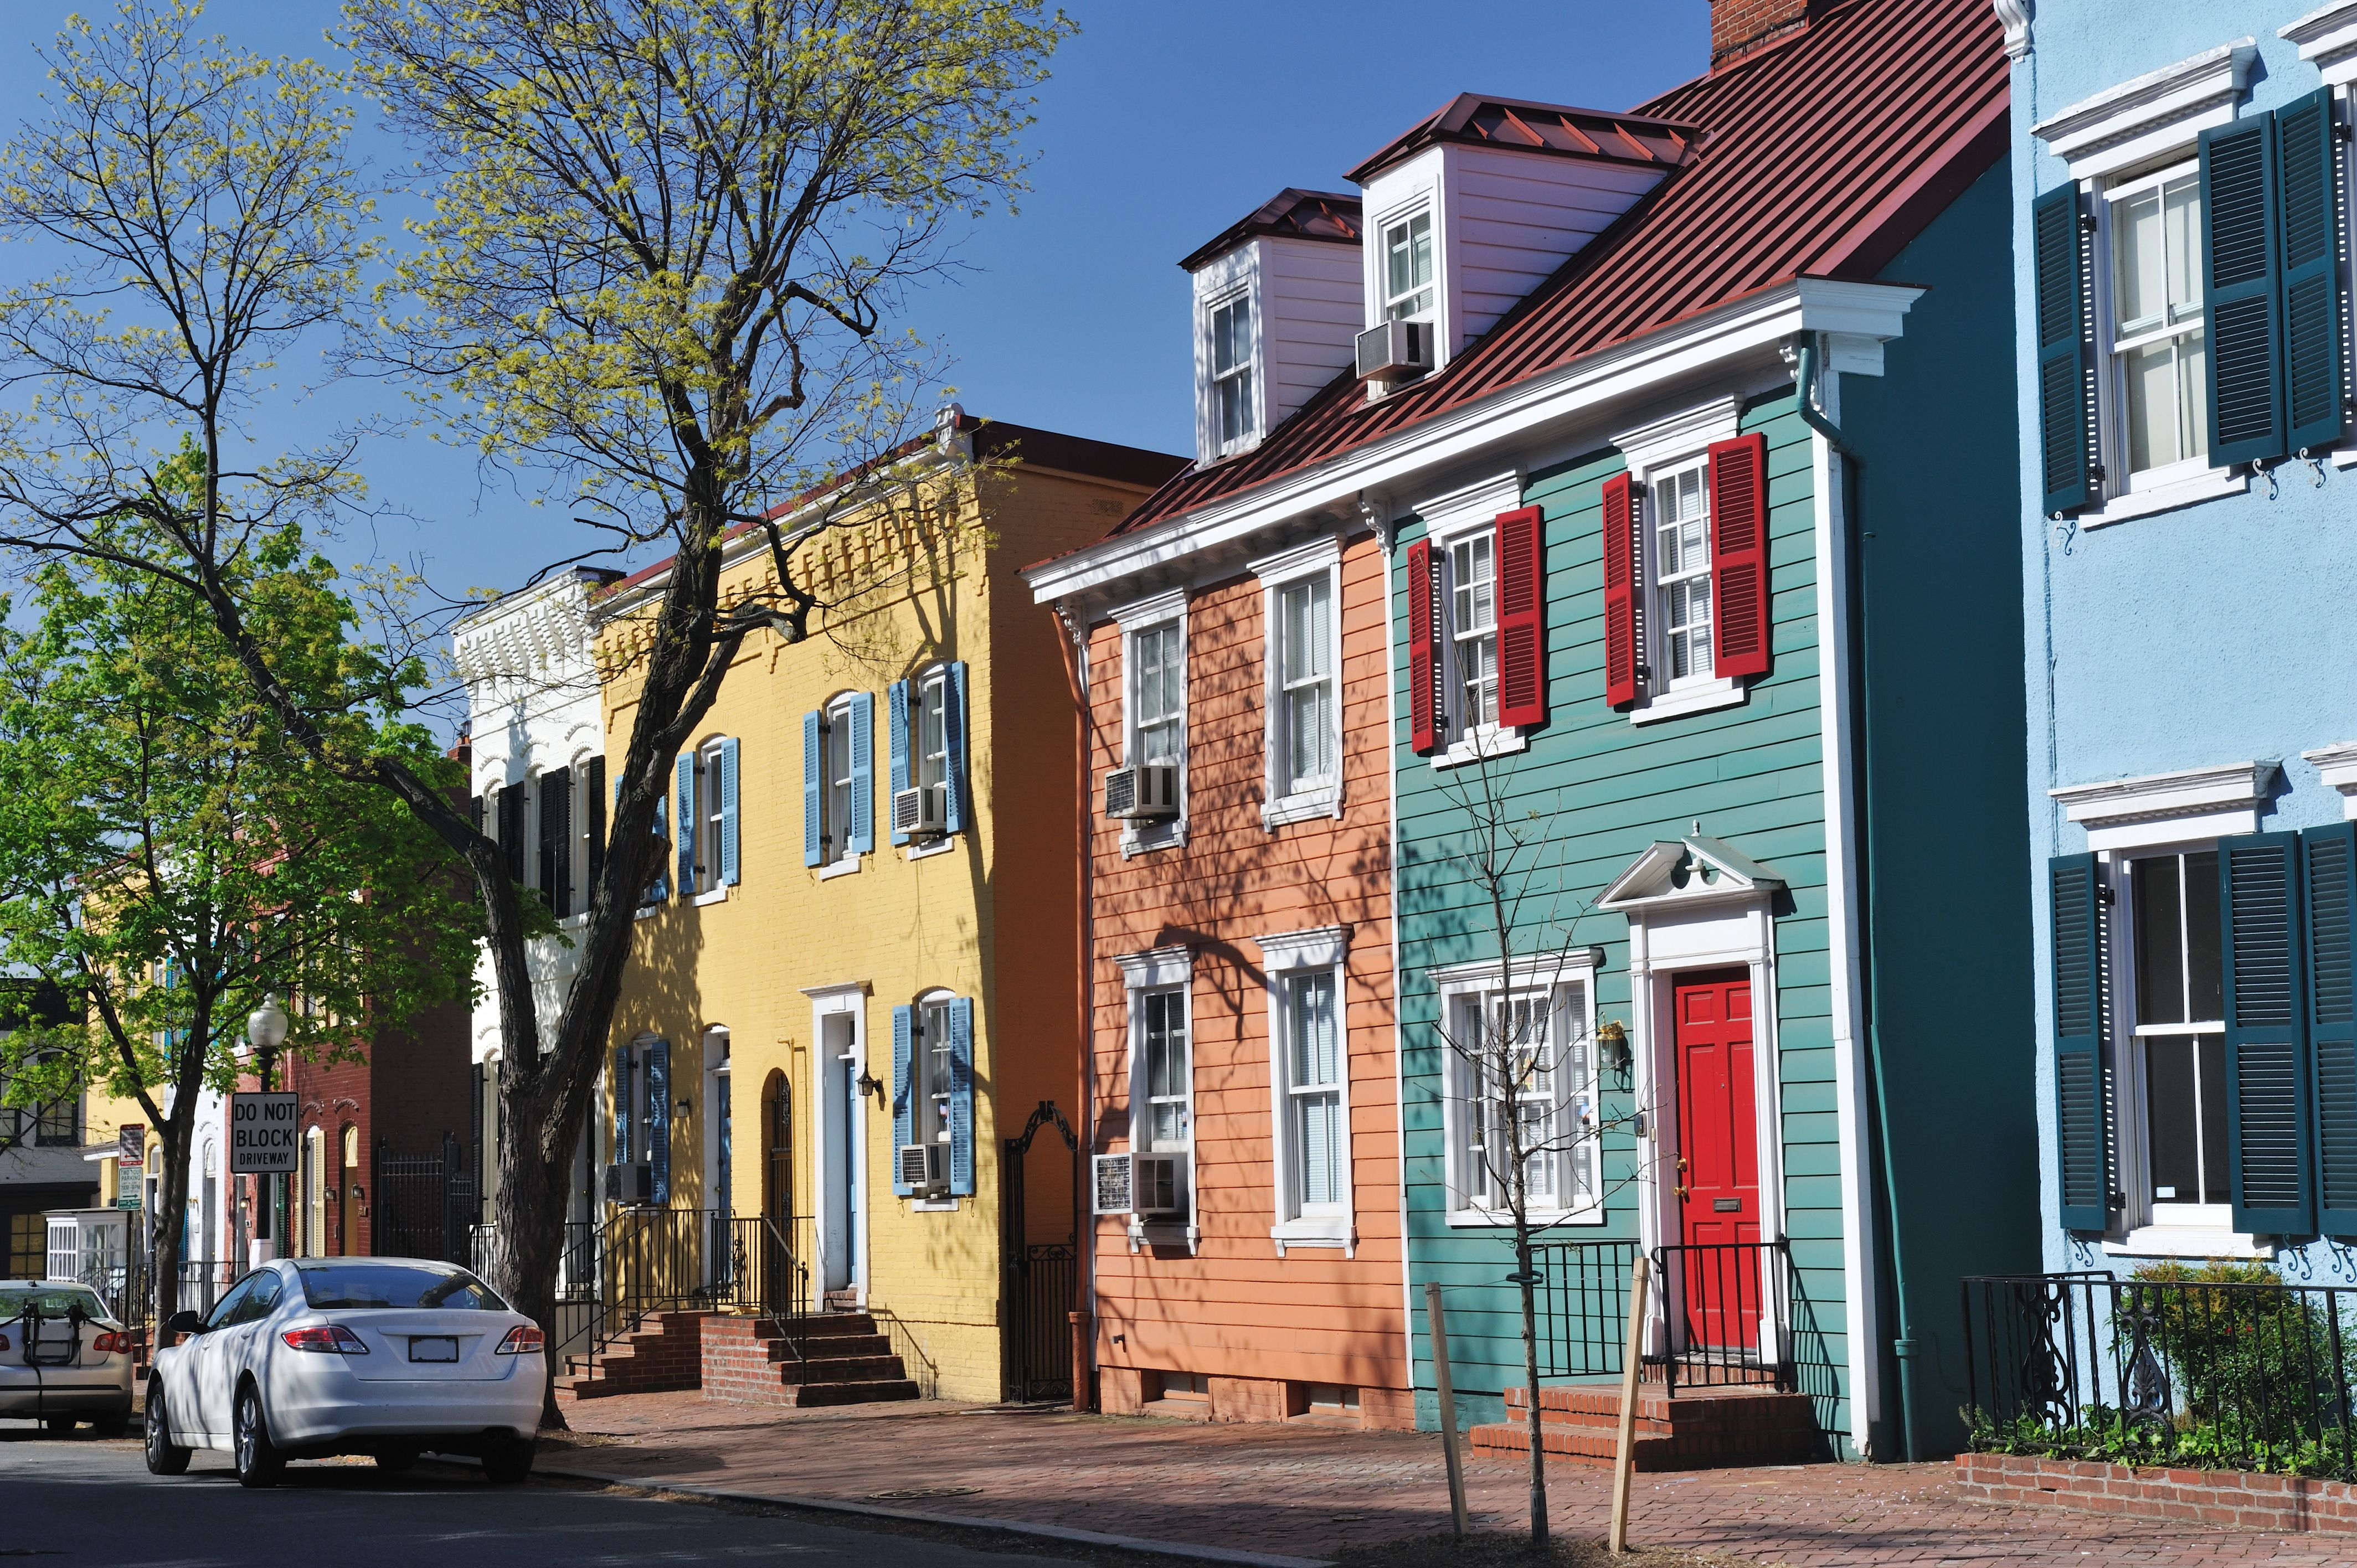 colorful-historic-row-houses-in-georgetown-155393842-5a5f9be0842b1700379e4cd8